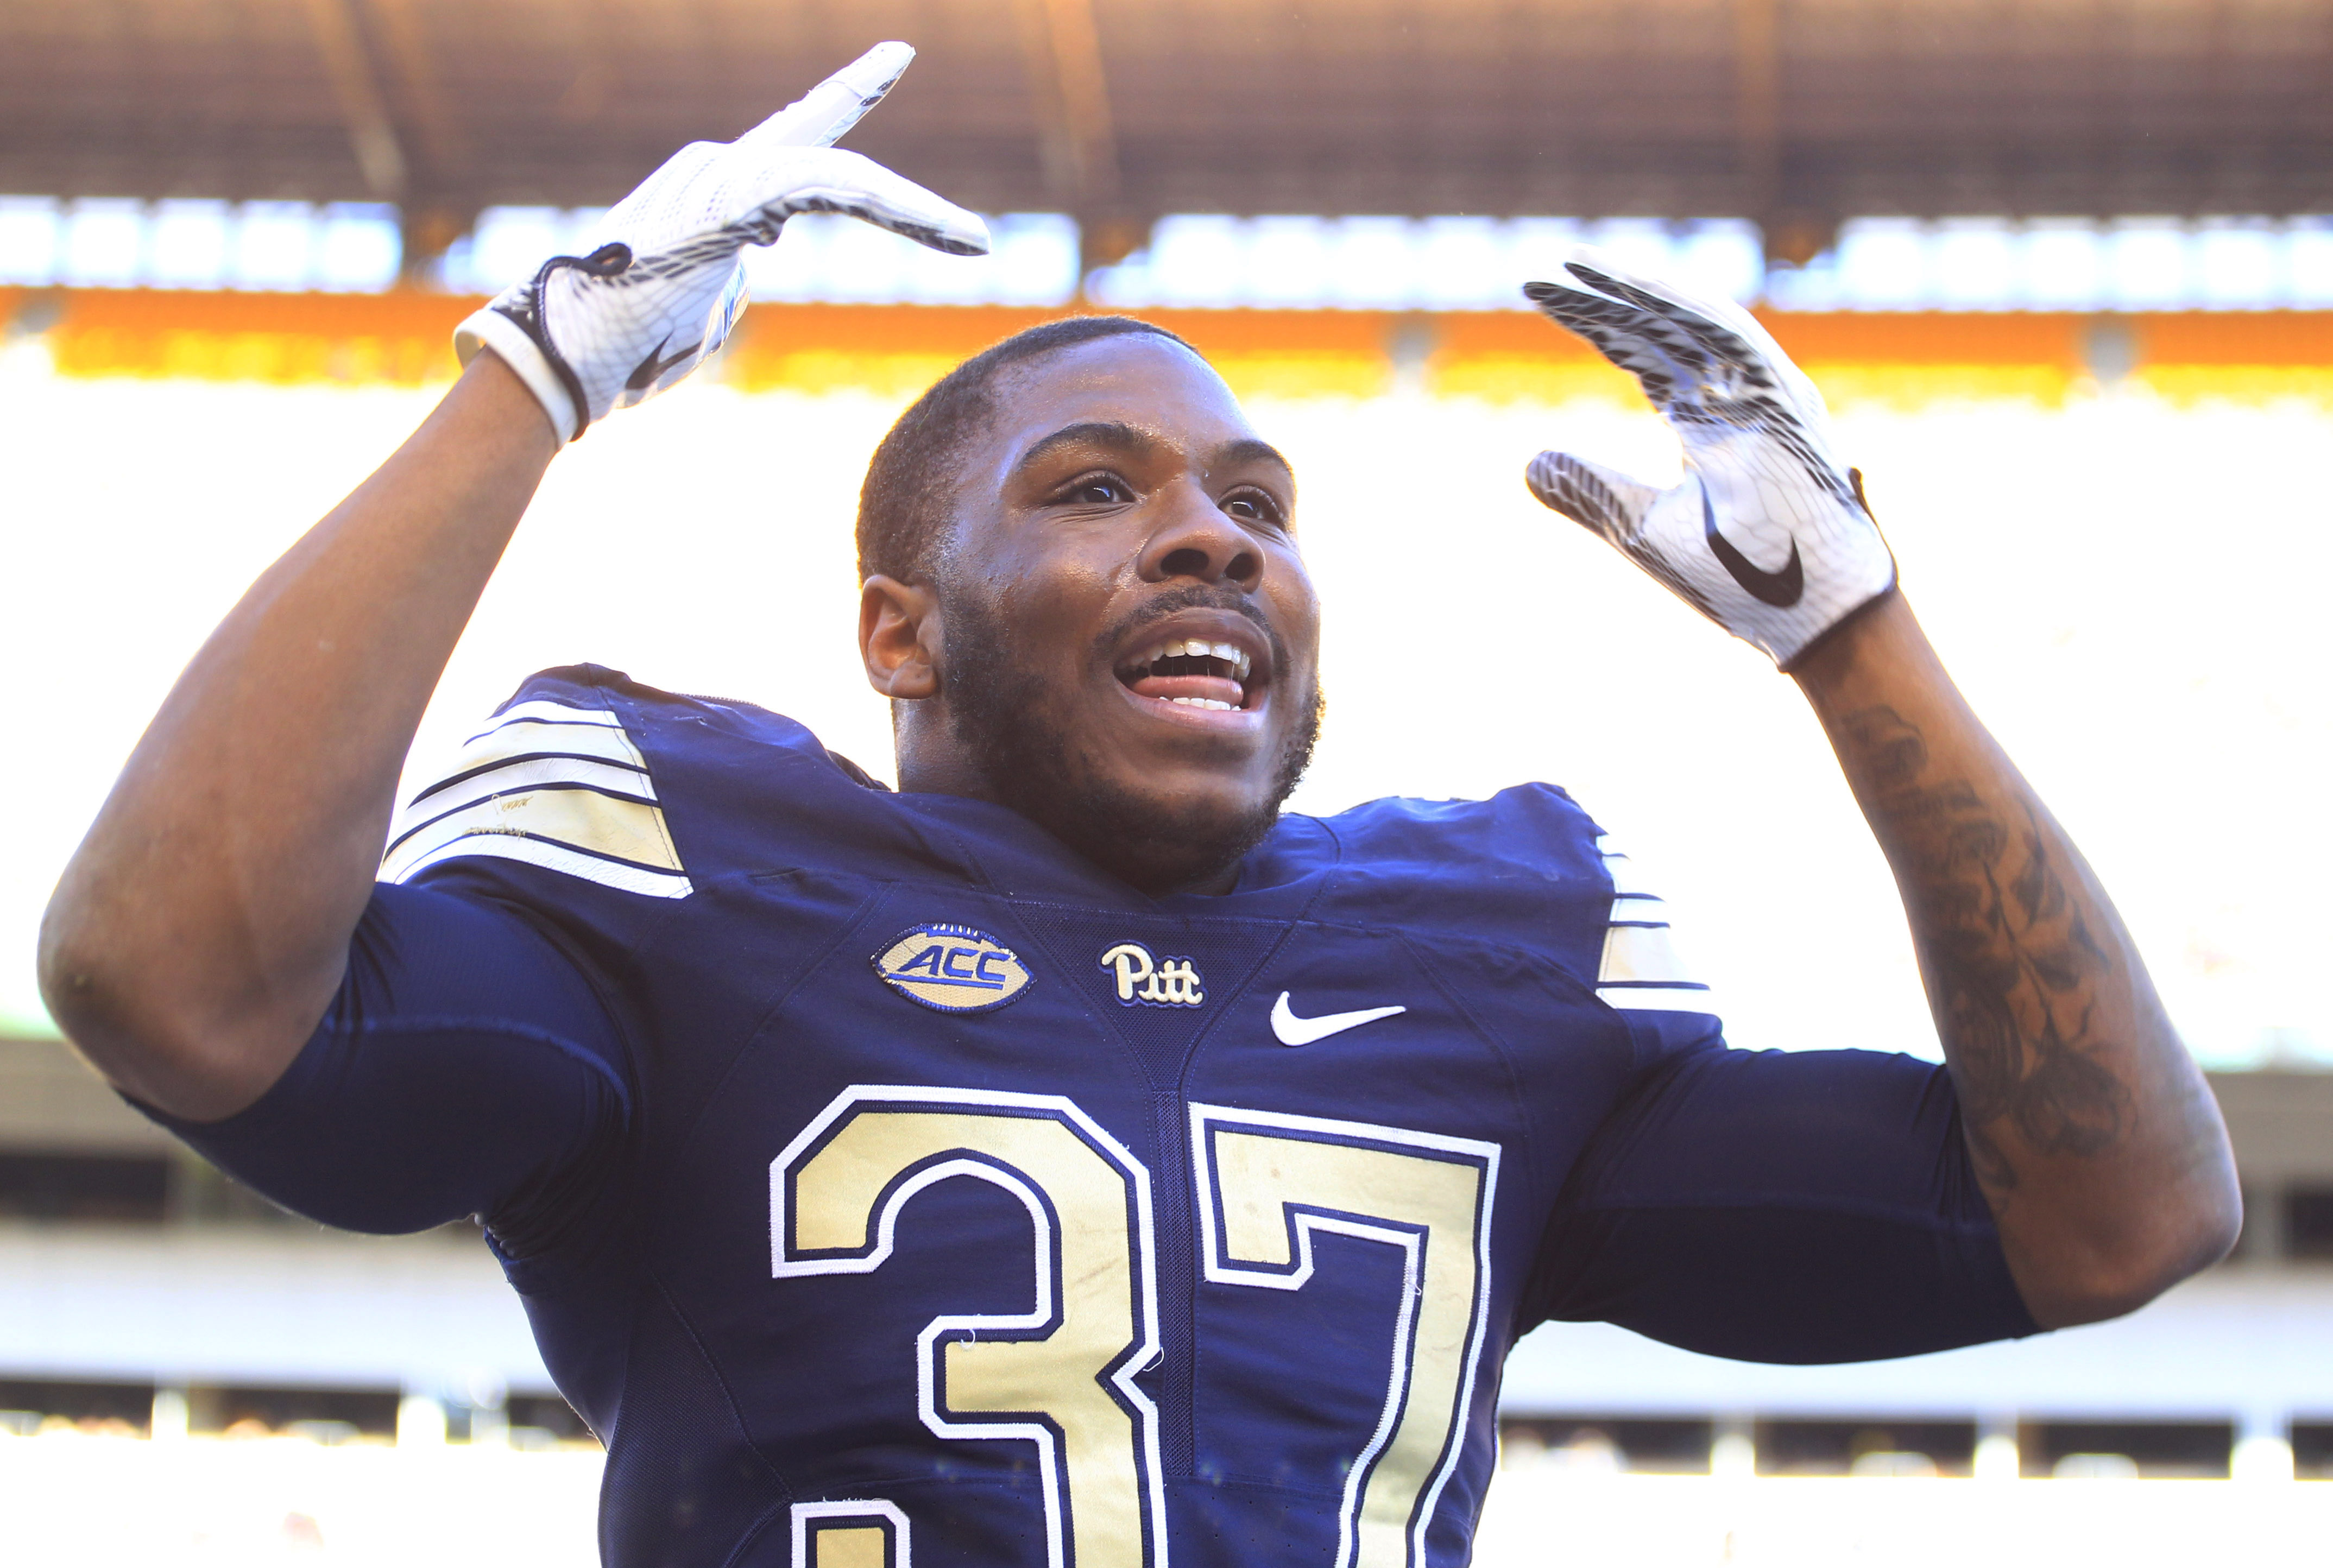 b13fd12c1 Pitt football's non-conference schedule again toughest in the country, per  ESPN. By CardiacHill ...